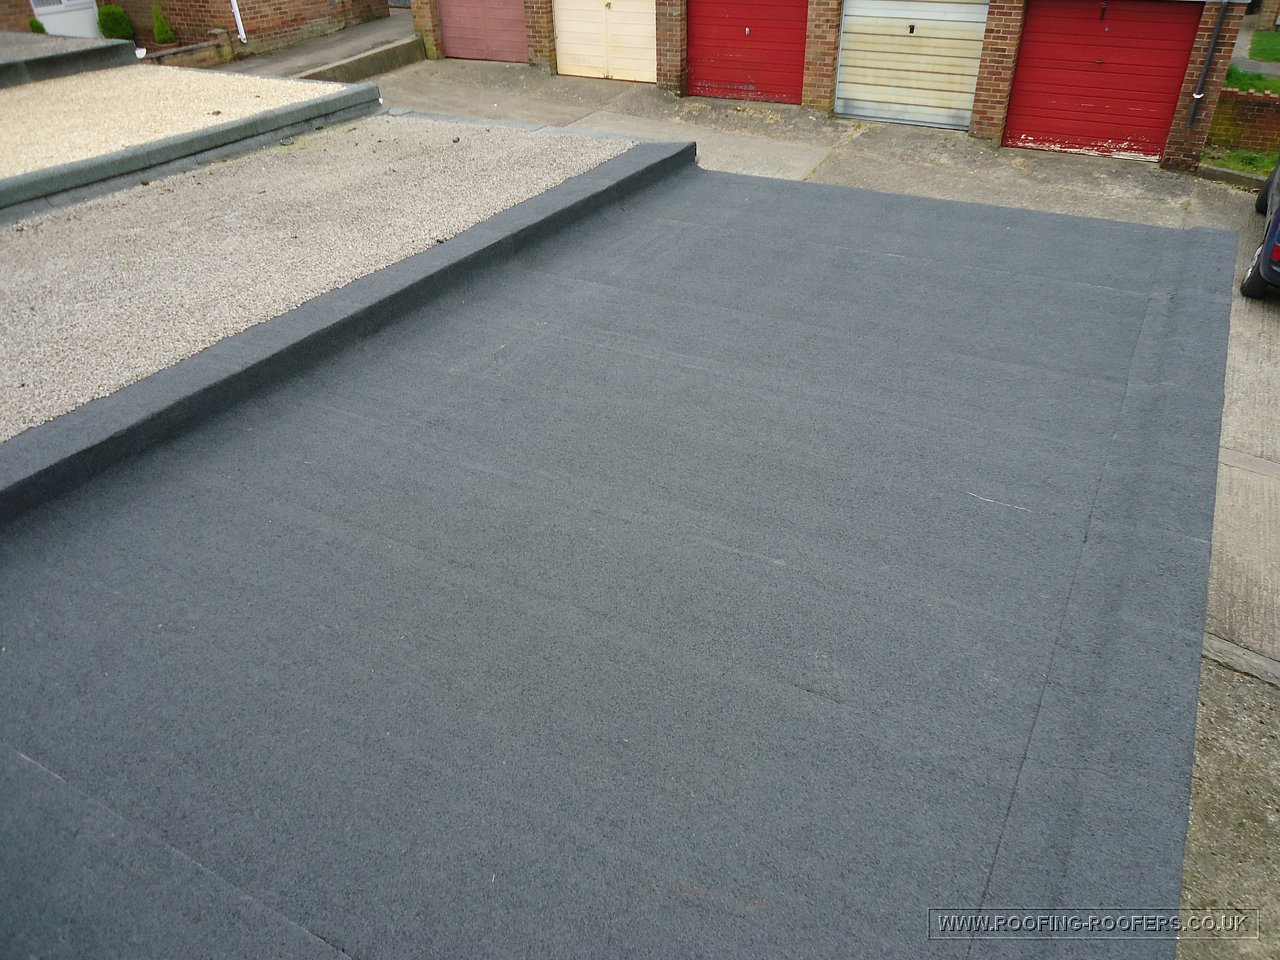 Mineral Felt Roofing And Building Repairs Specialists